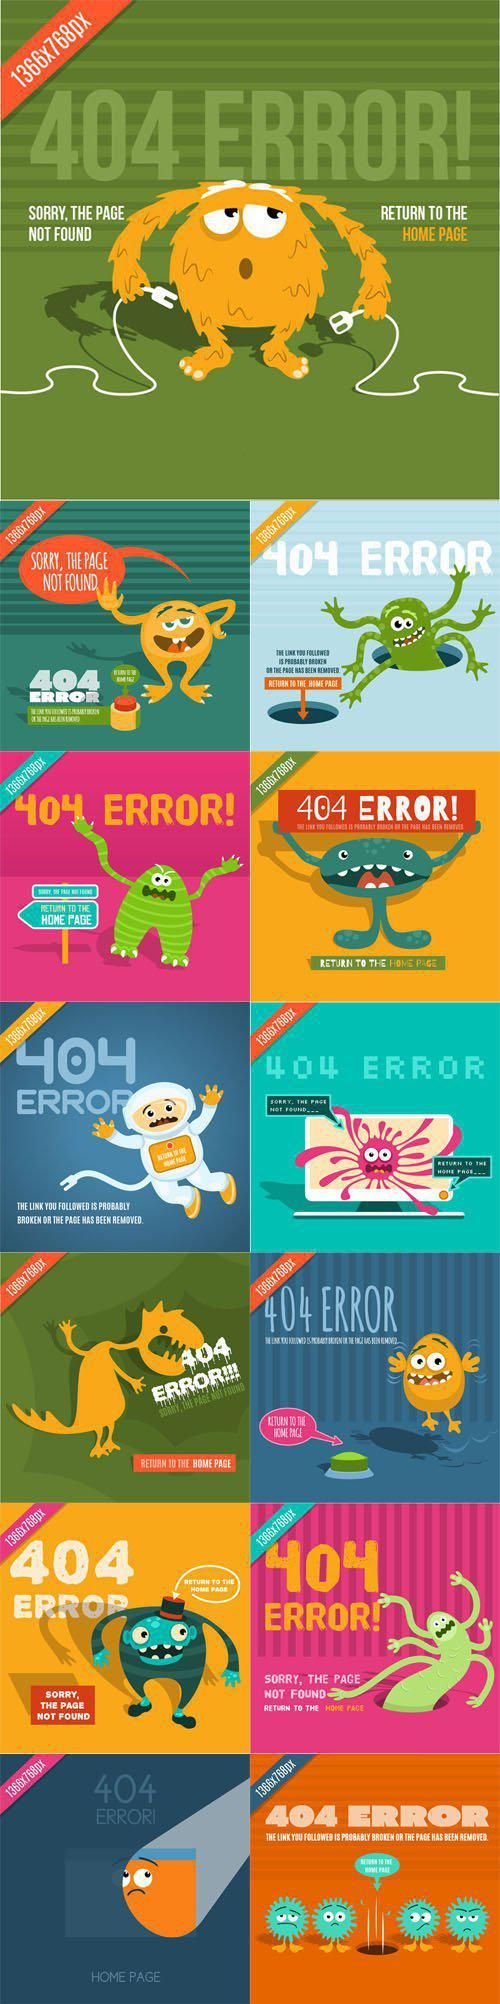 404 Error Page Vector Template Collection